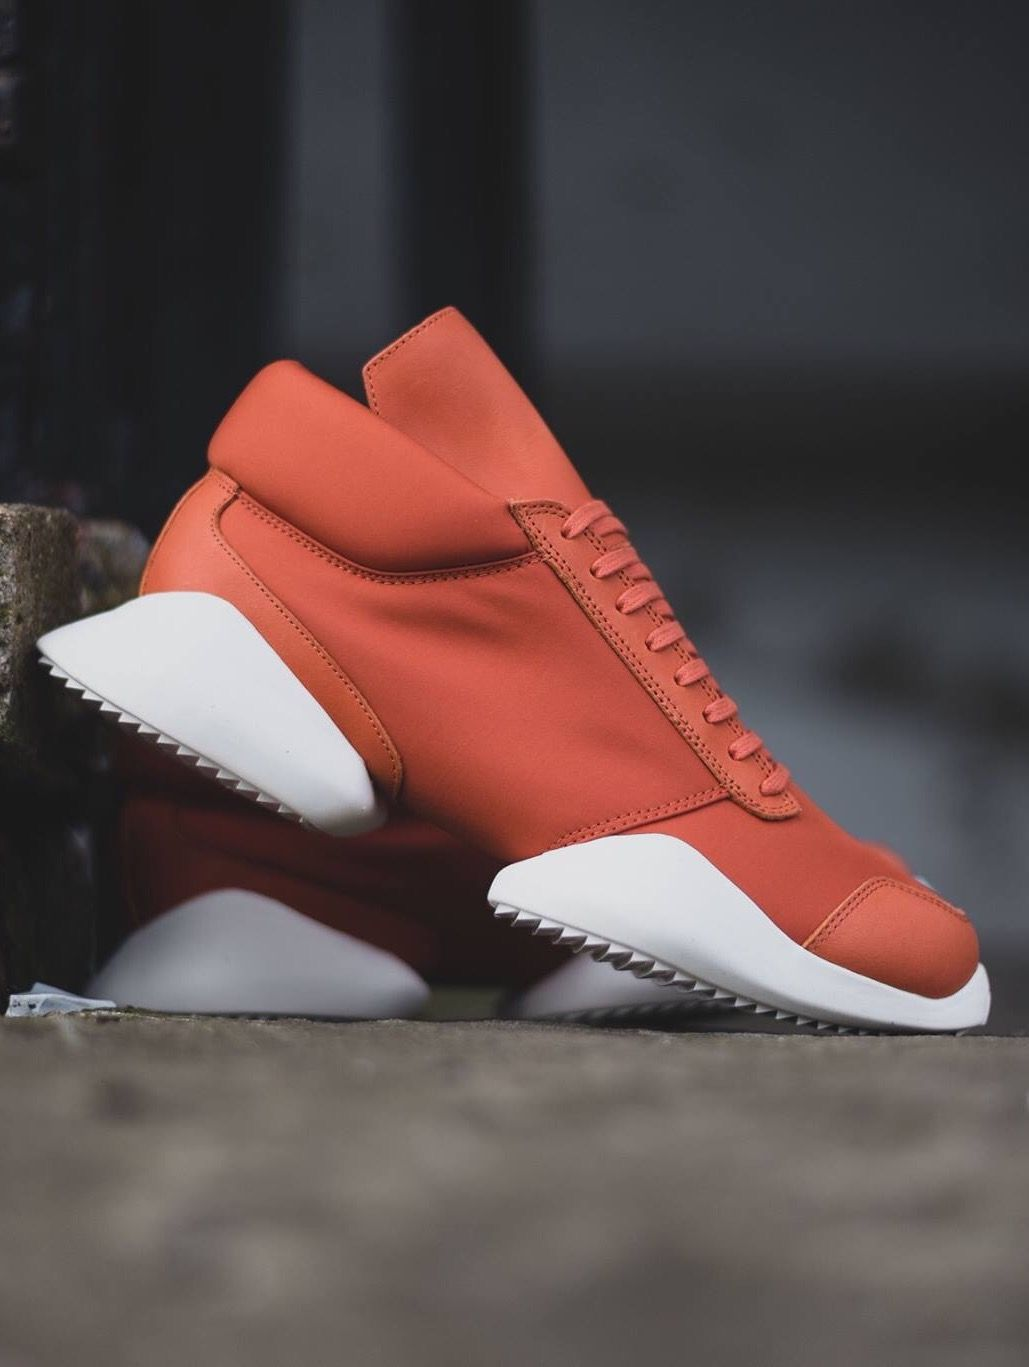 Rick Owens x adidas Runner: Fox Red